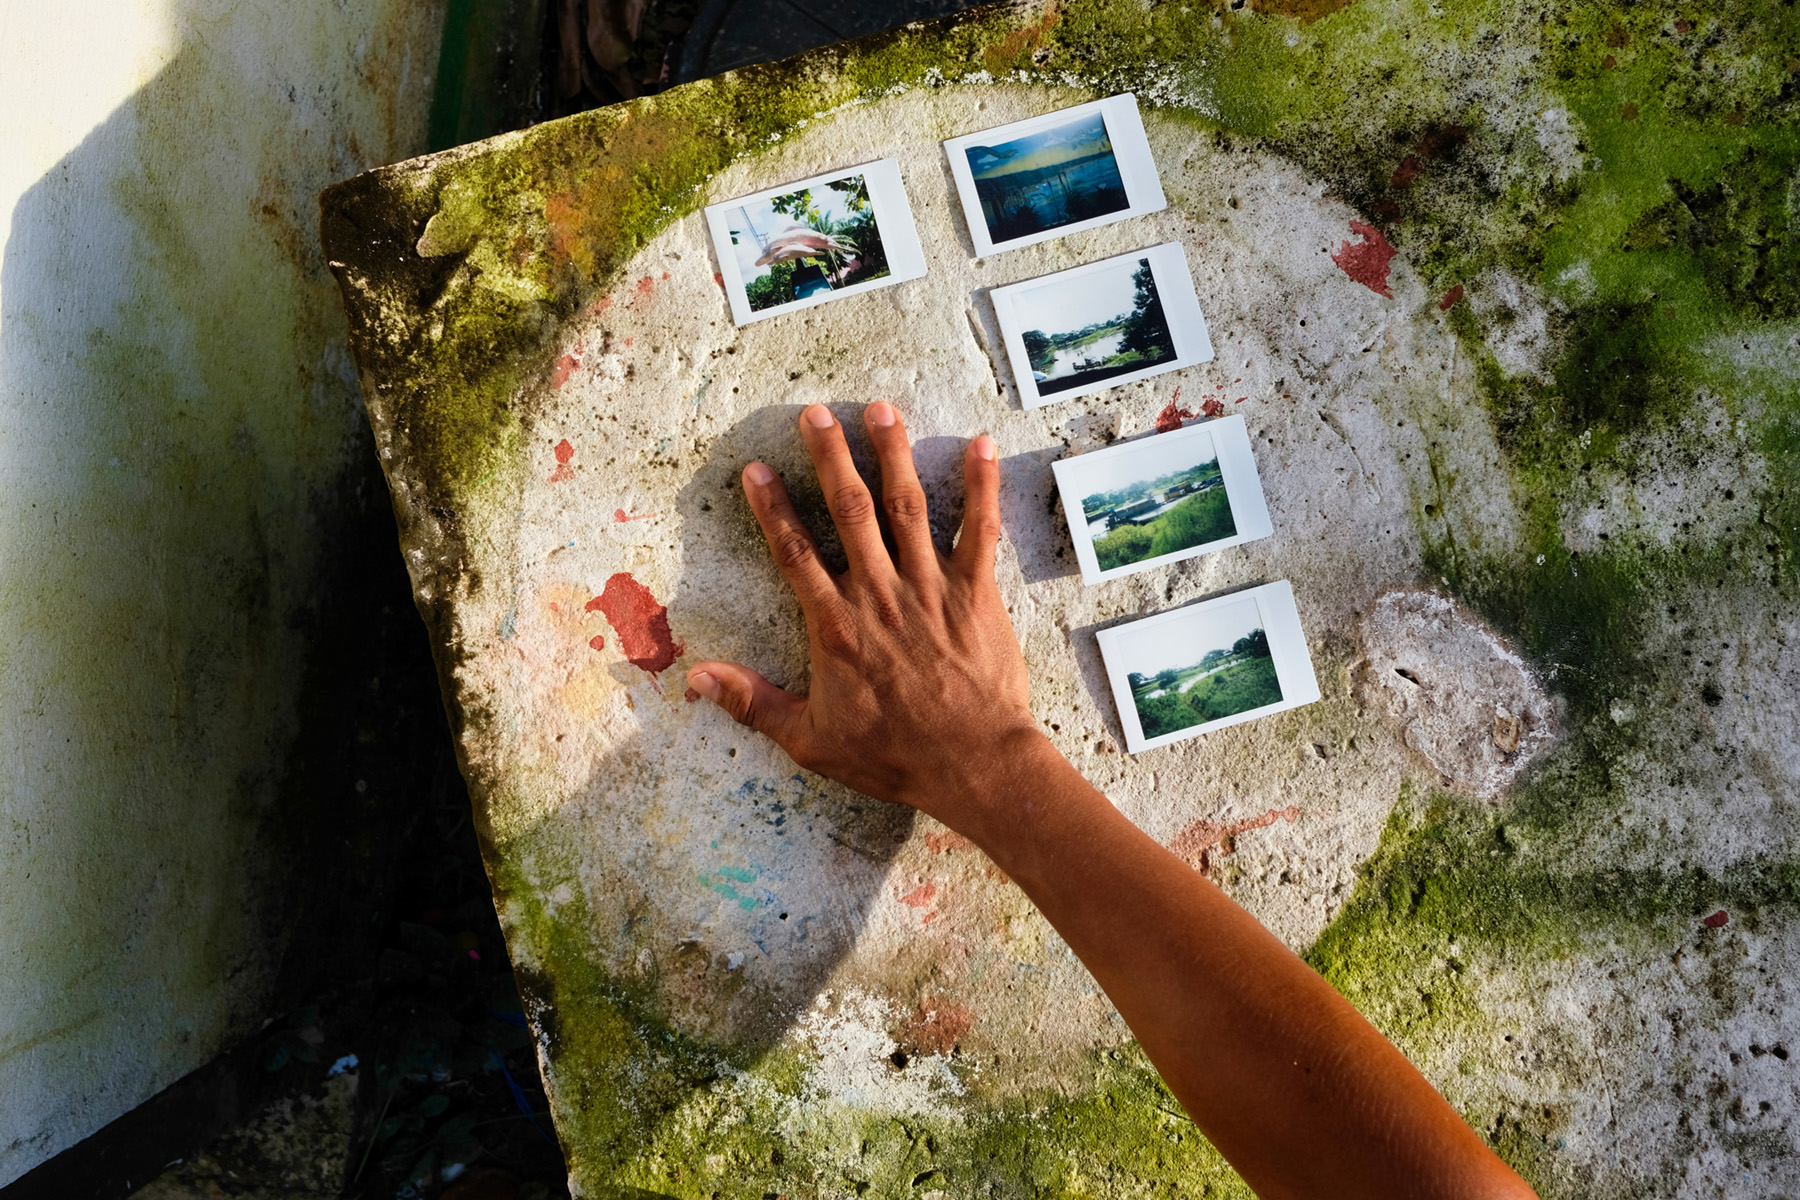 RE-MAPPING the AMAZON : Hand with Triple Border Polaroids taken by youth, Leticia, Amazonia. Collaborative photography using creative ethnography inquiry approach during workshop